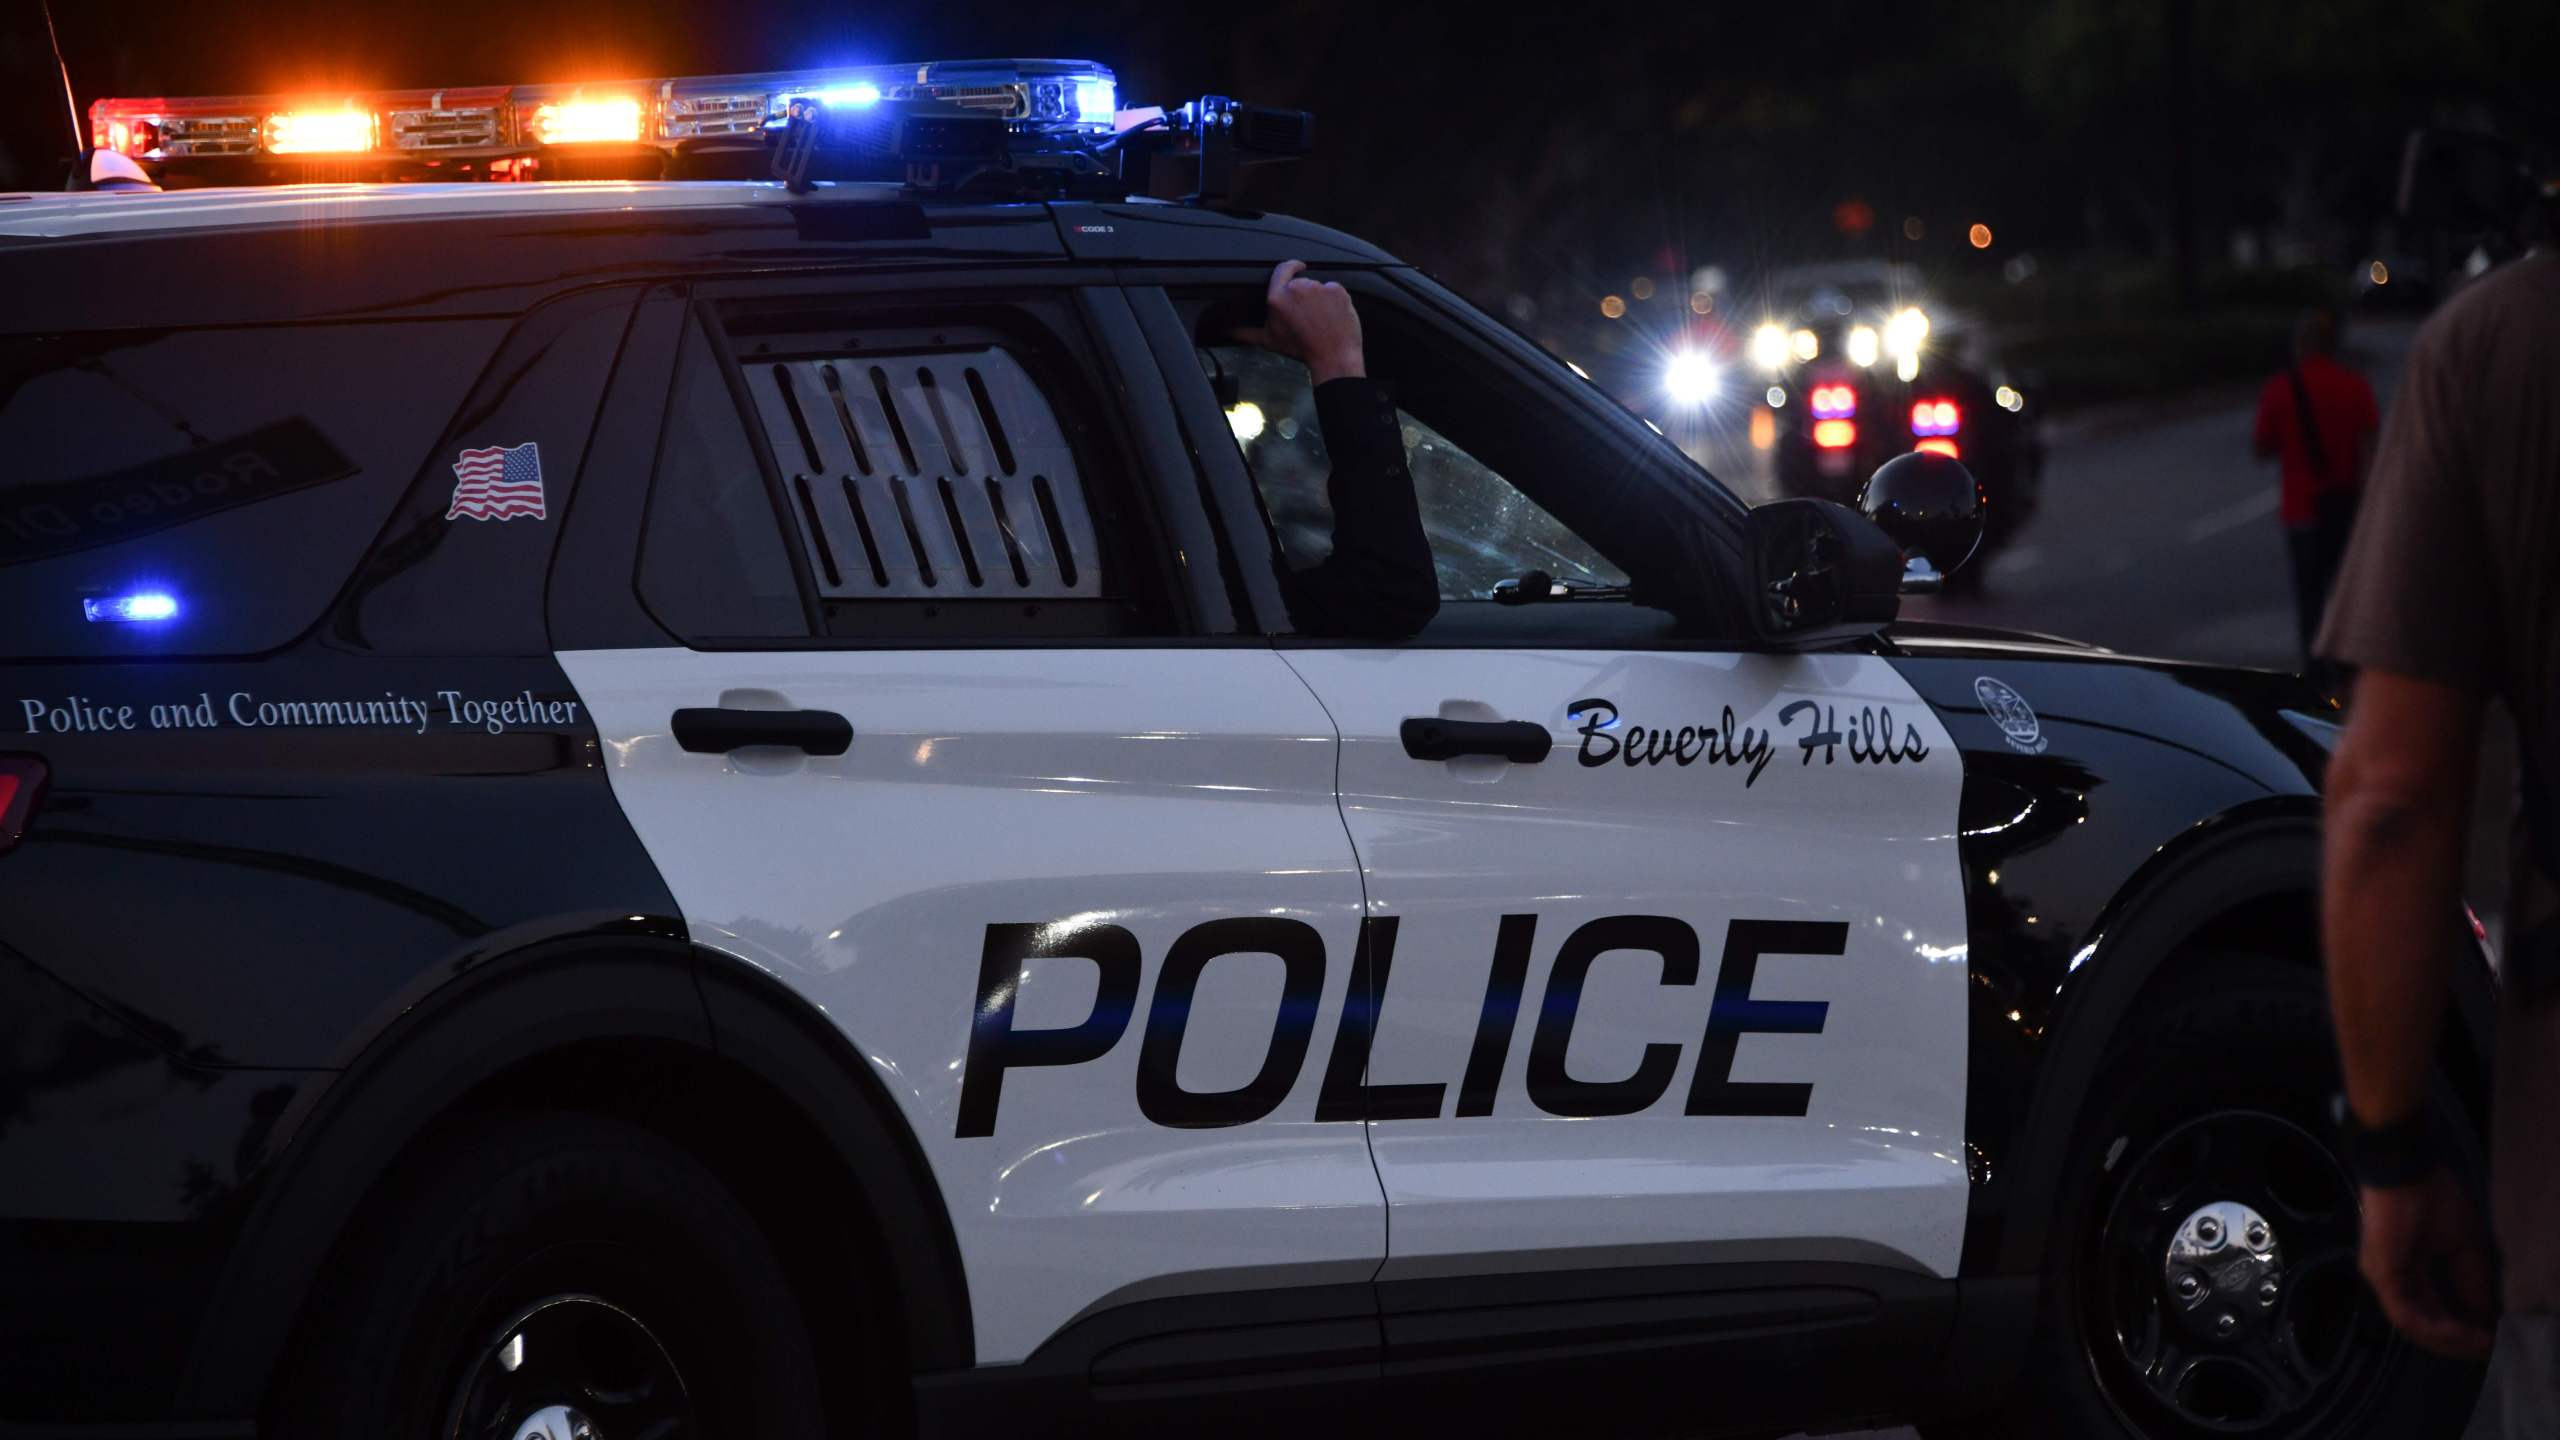 Beverly Hills police officers patrol in their car on November 1, 2020 in Beverly Hills. (Photo by Chris Delmas/AFP via Getty Images)